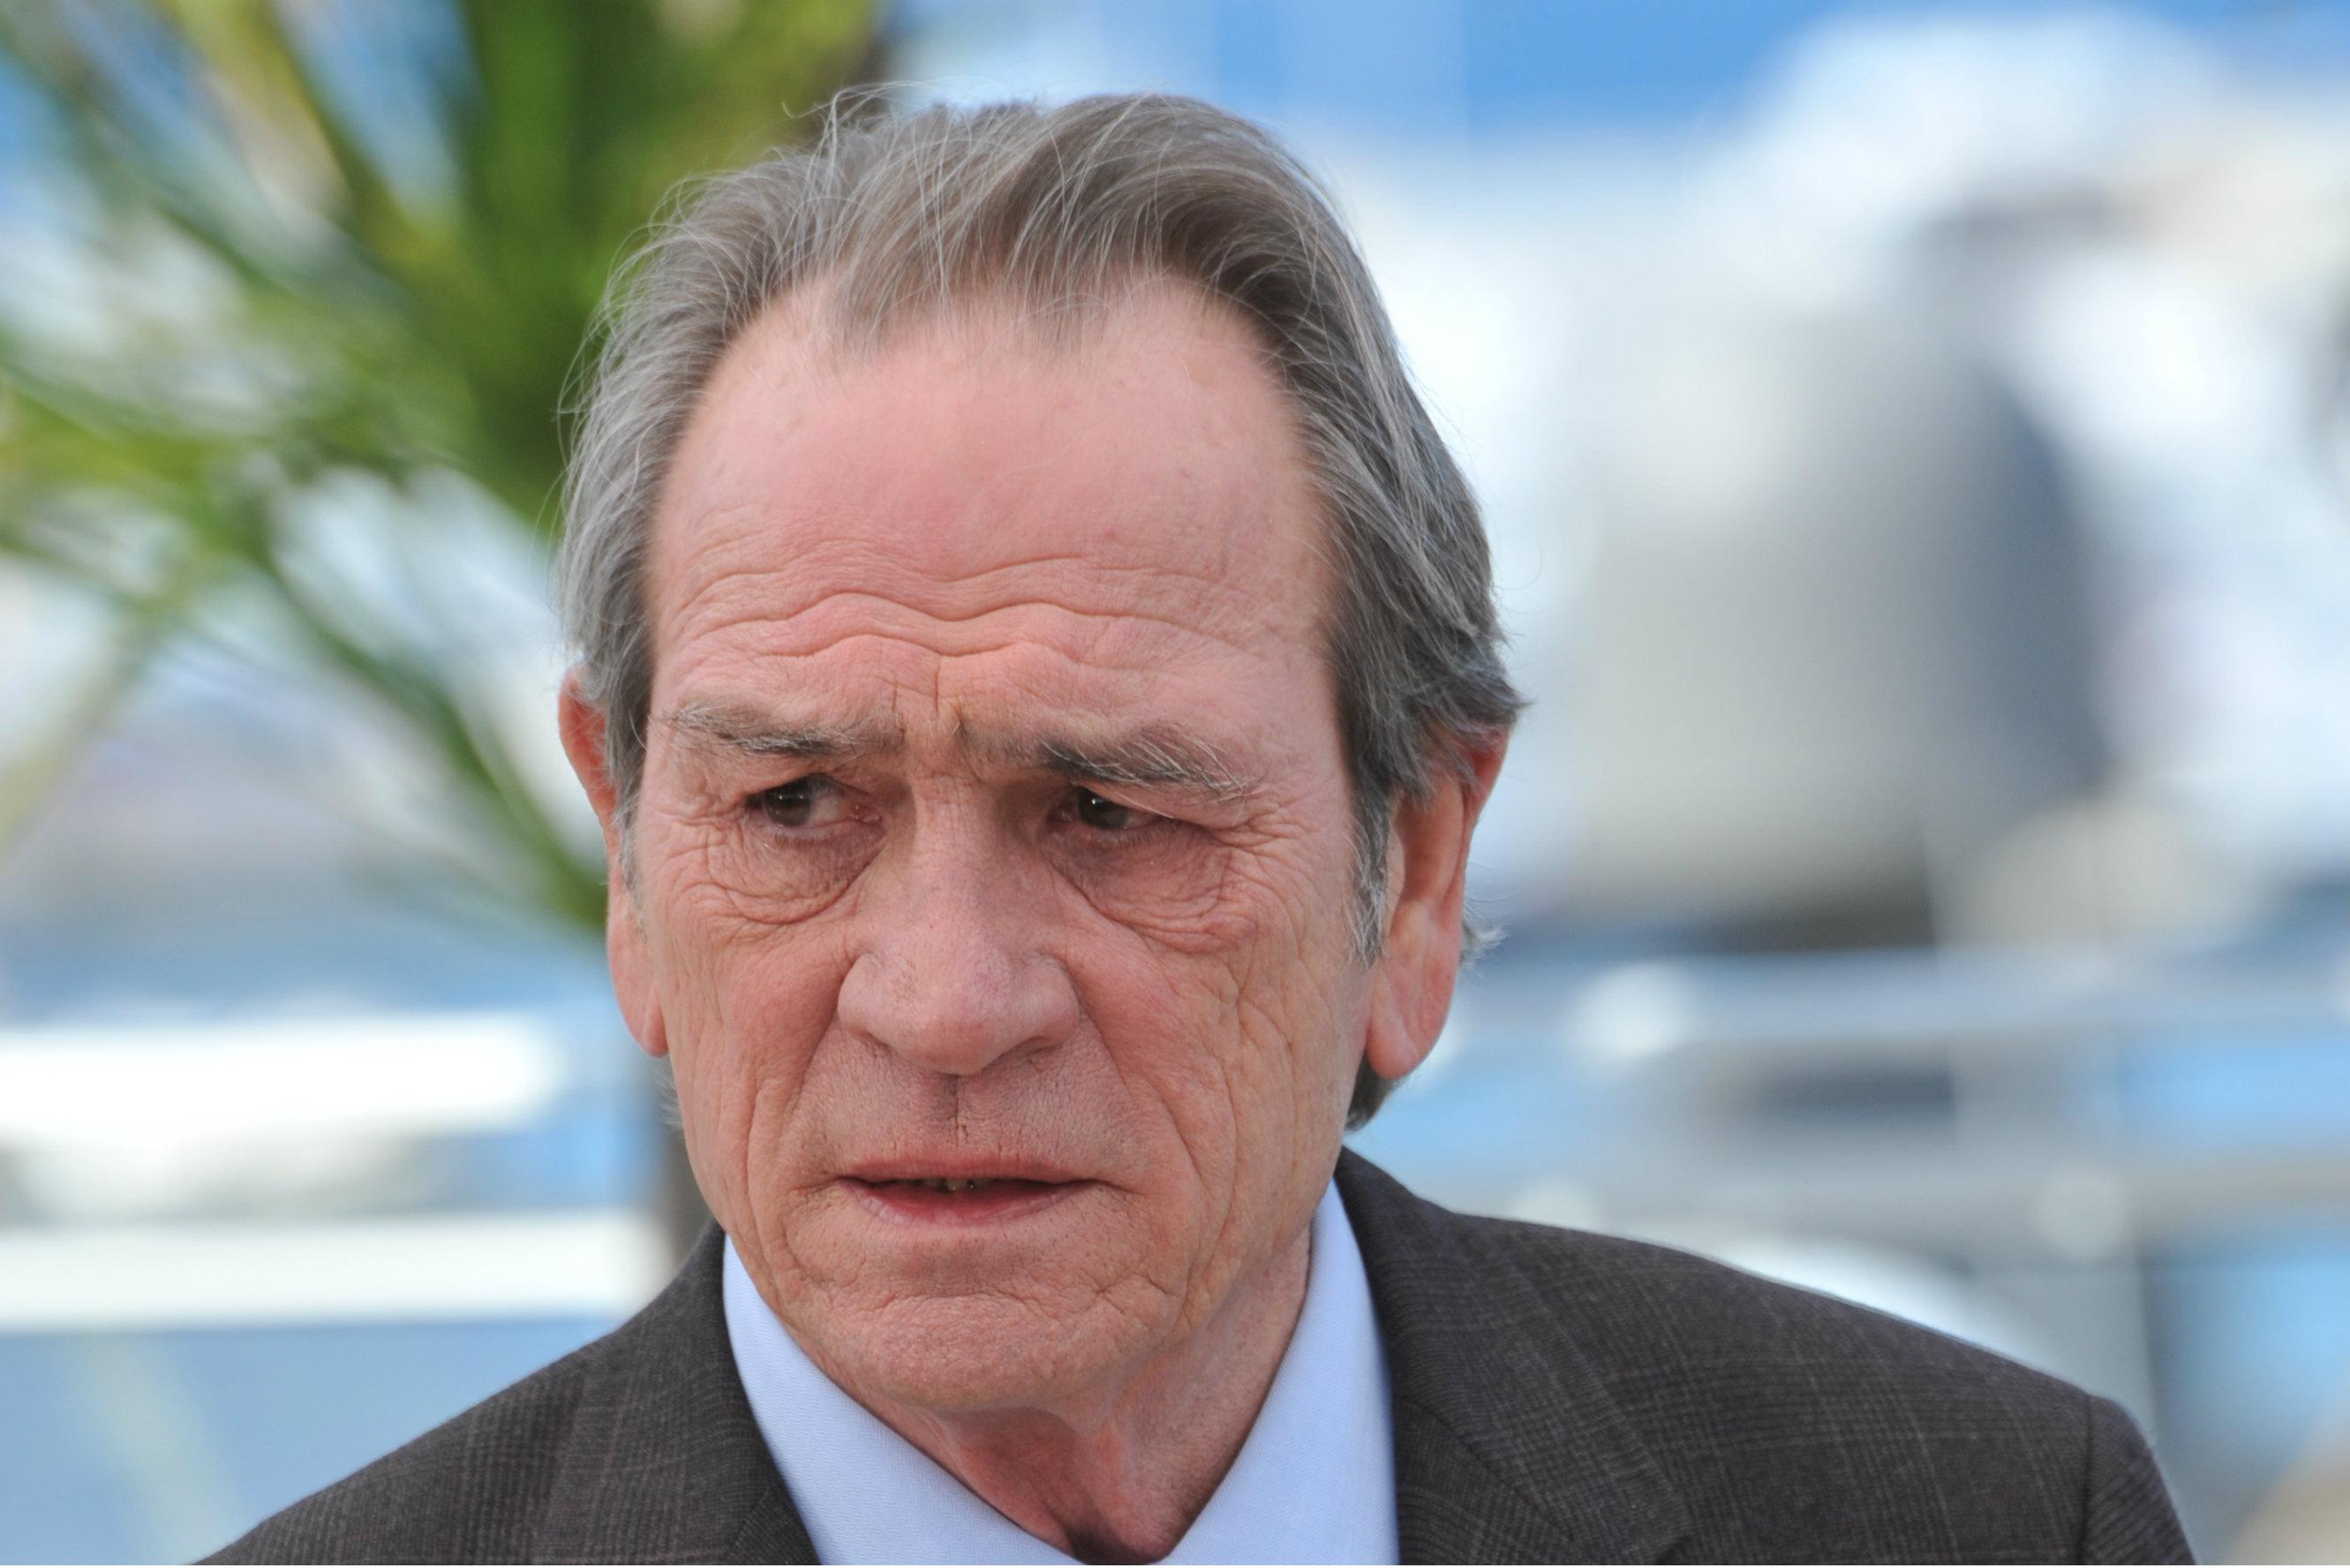 Tommy Lee Jones will bring his flippant air to Matt Damon in fifth Bourne installment